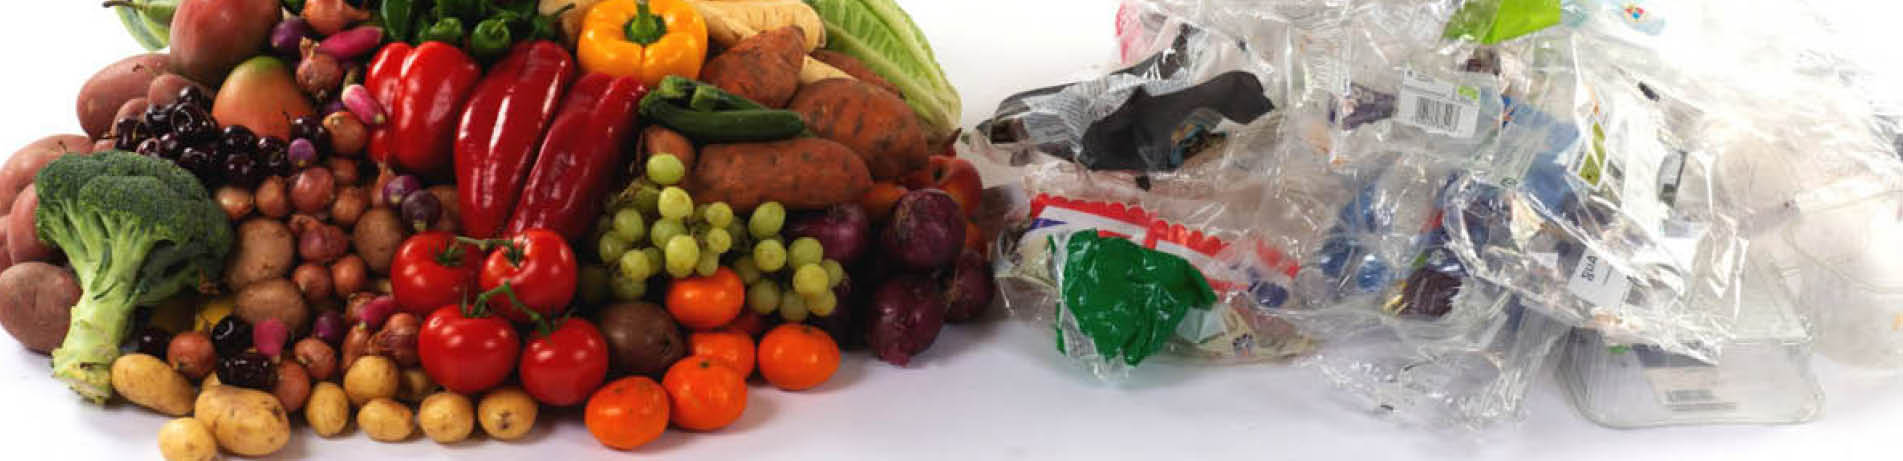 Fruit and vegetables from a supermarket with associated plastic waste